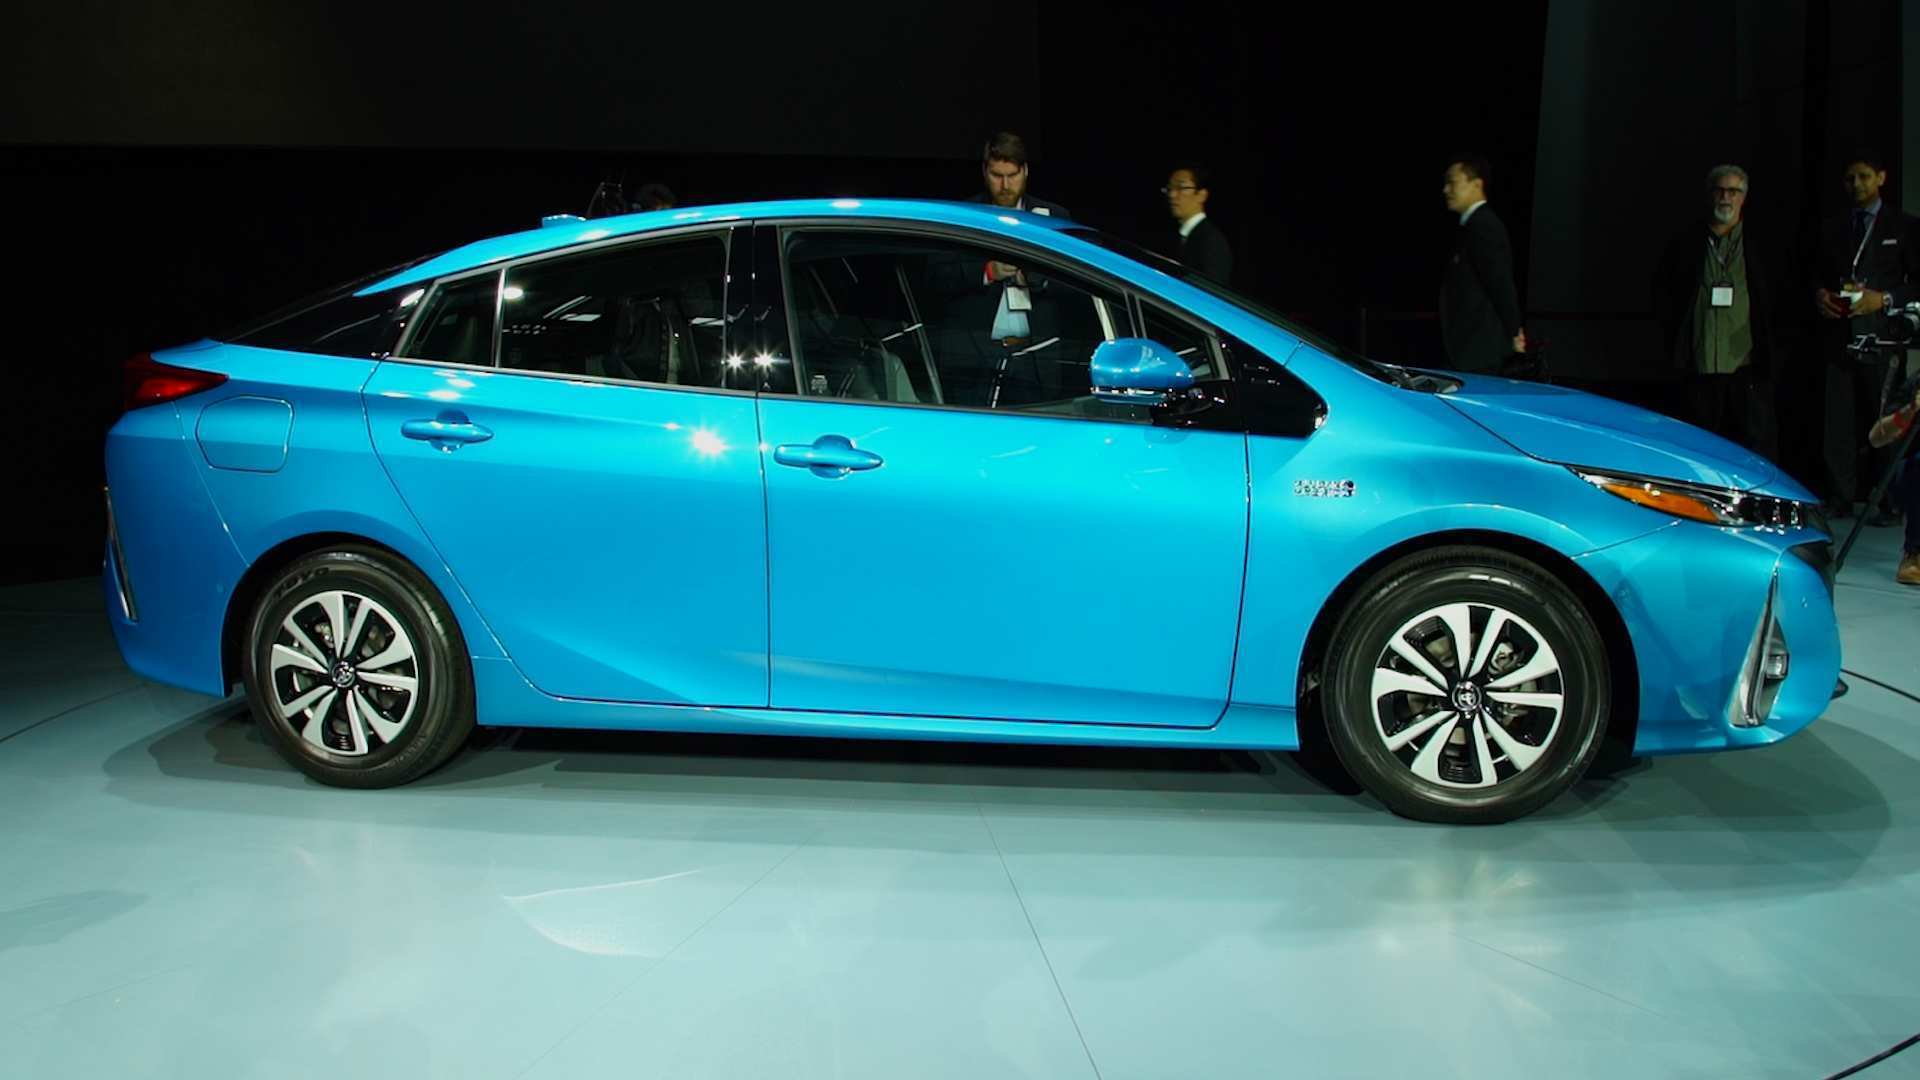 26 New 2020 Spy Shots Toyota Prius Redesign And Review